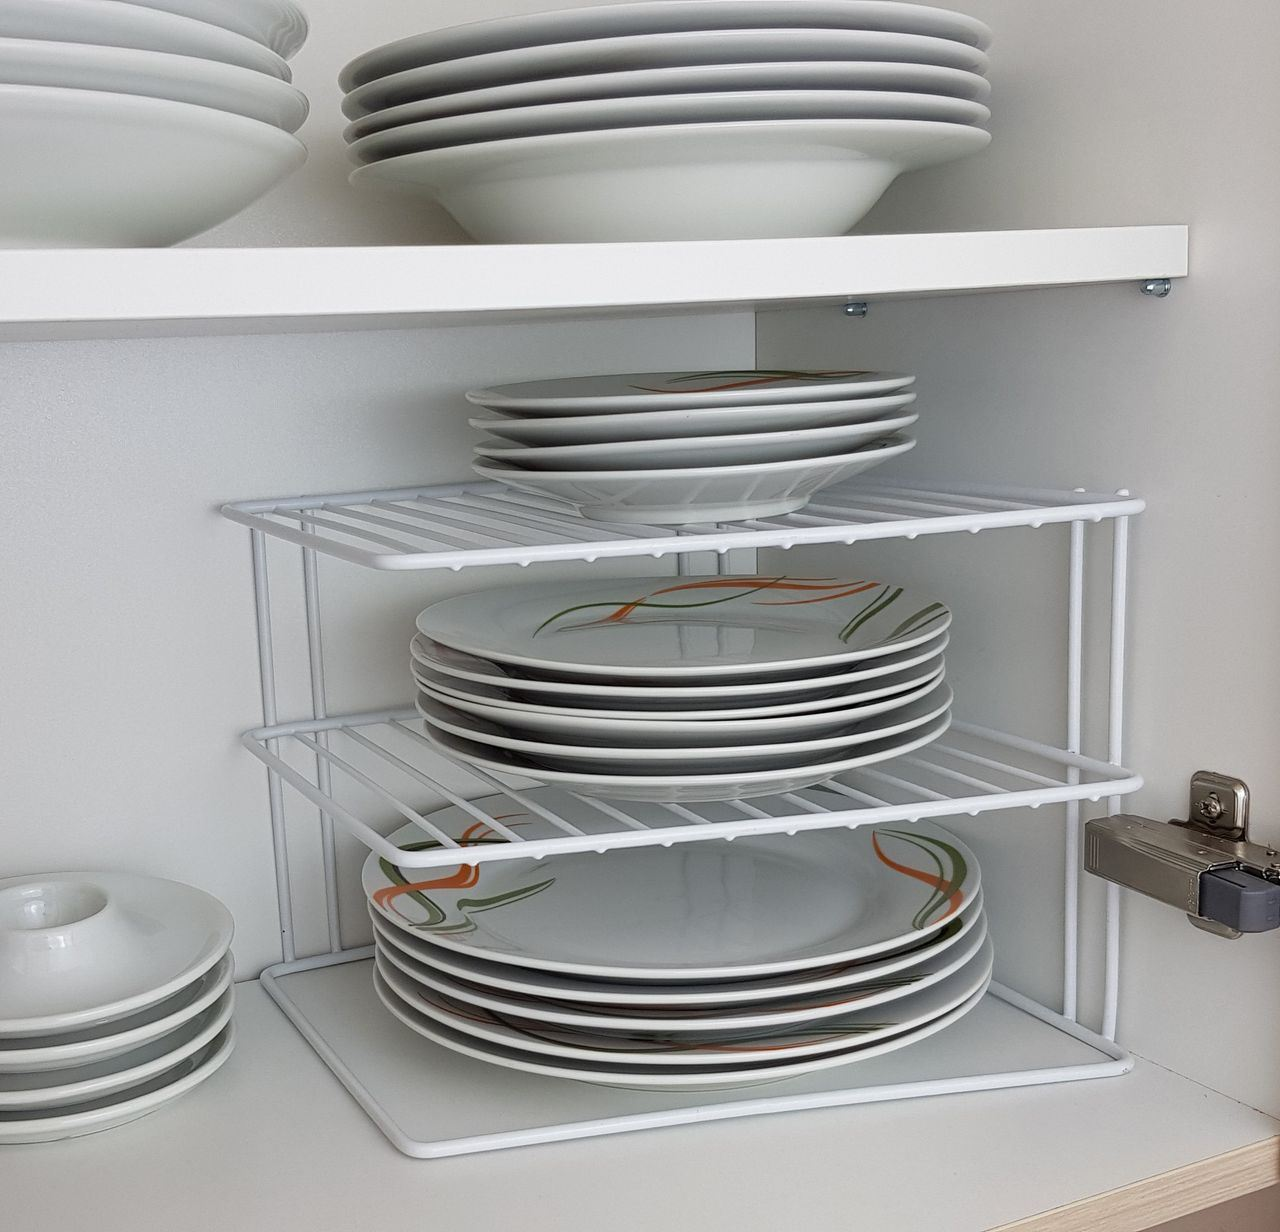 3 Tier White Corner Kitchen Plate Rack Tidy Cupboard Shelf Insert Organiser New Ebay I had to buy two to get all four cabinet doors done. details about 3 tier white corner kitchen plate rack tidy cupboard shelf insert organiser new